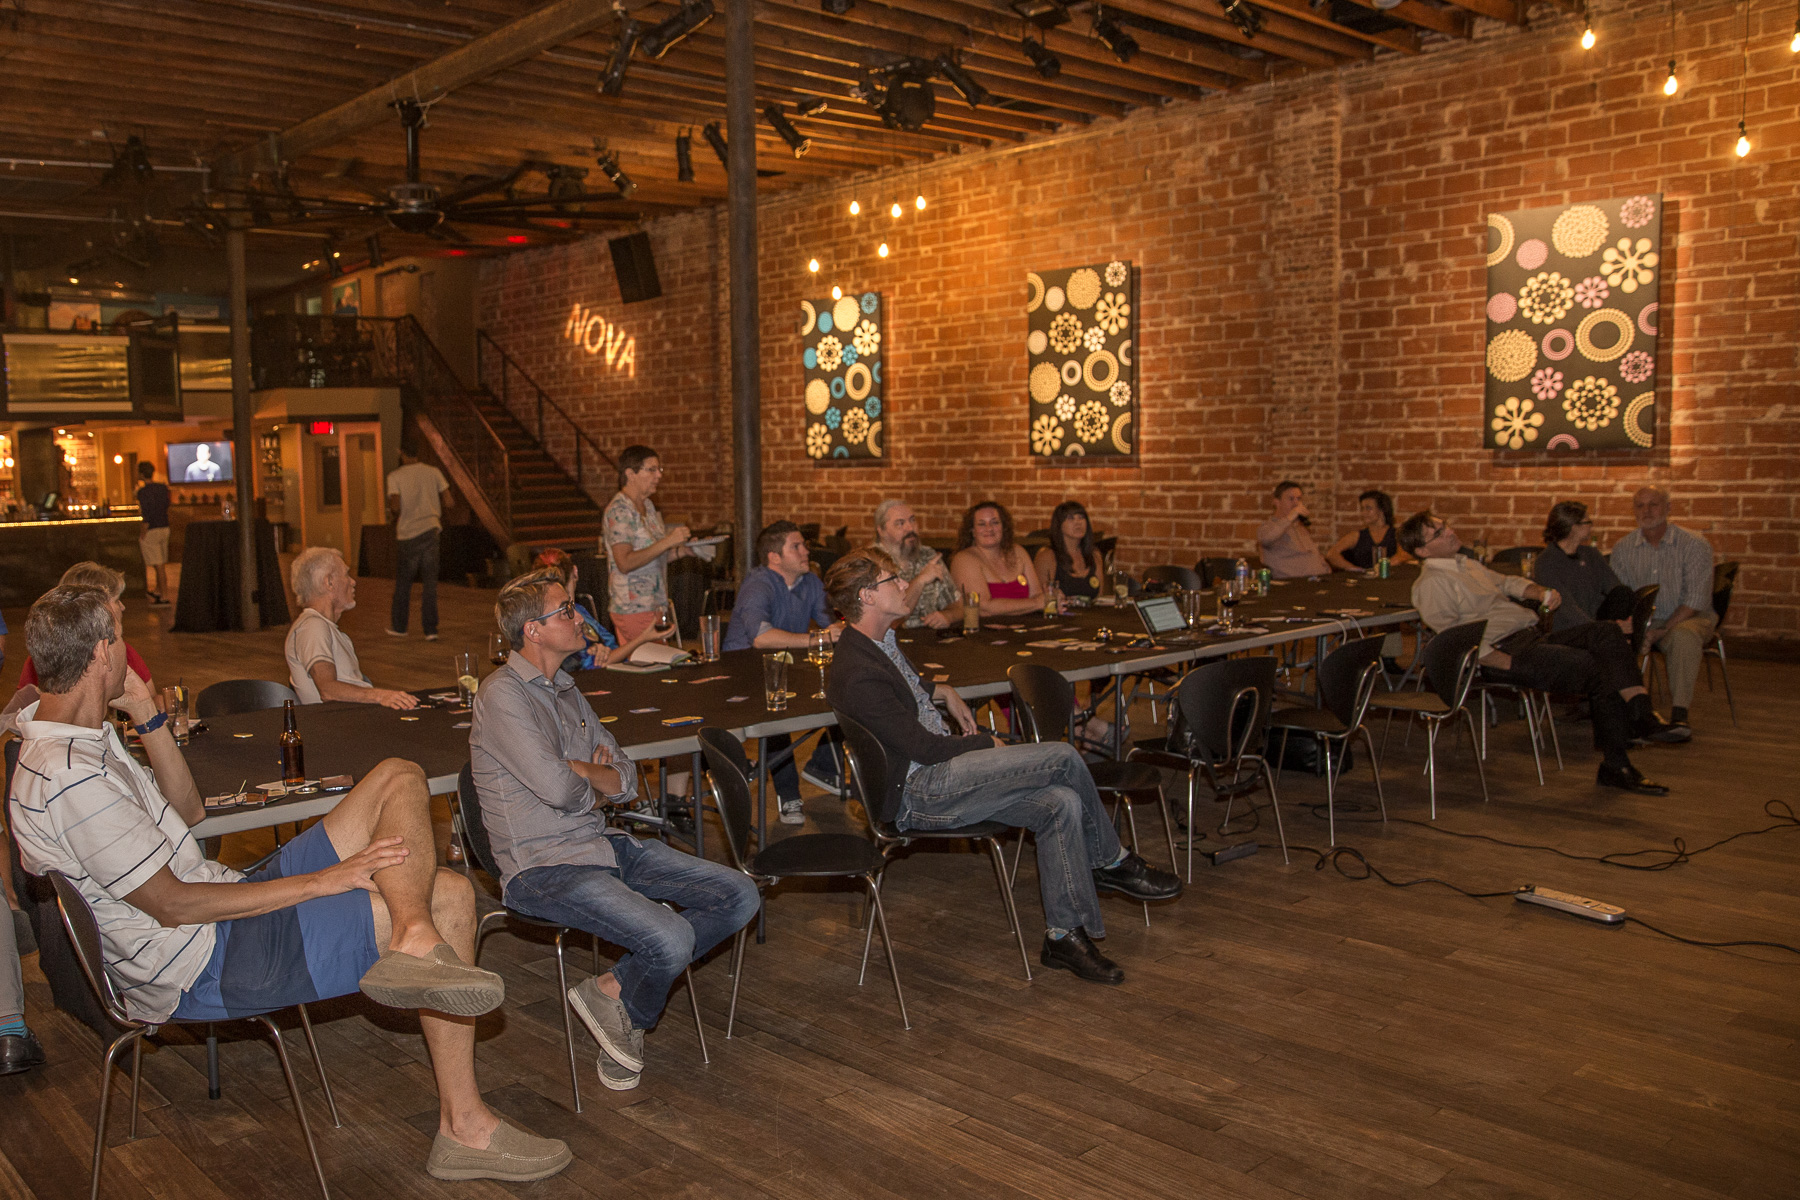 Swarm.City Boardwalk Release for Blockchain Enabled Commerce discussed here at Entrepreneur Social Club in DTSP at historic wedding and event venue NOVA 535 with Cate Colgan #pioneer